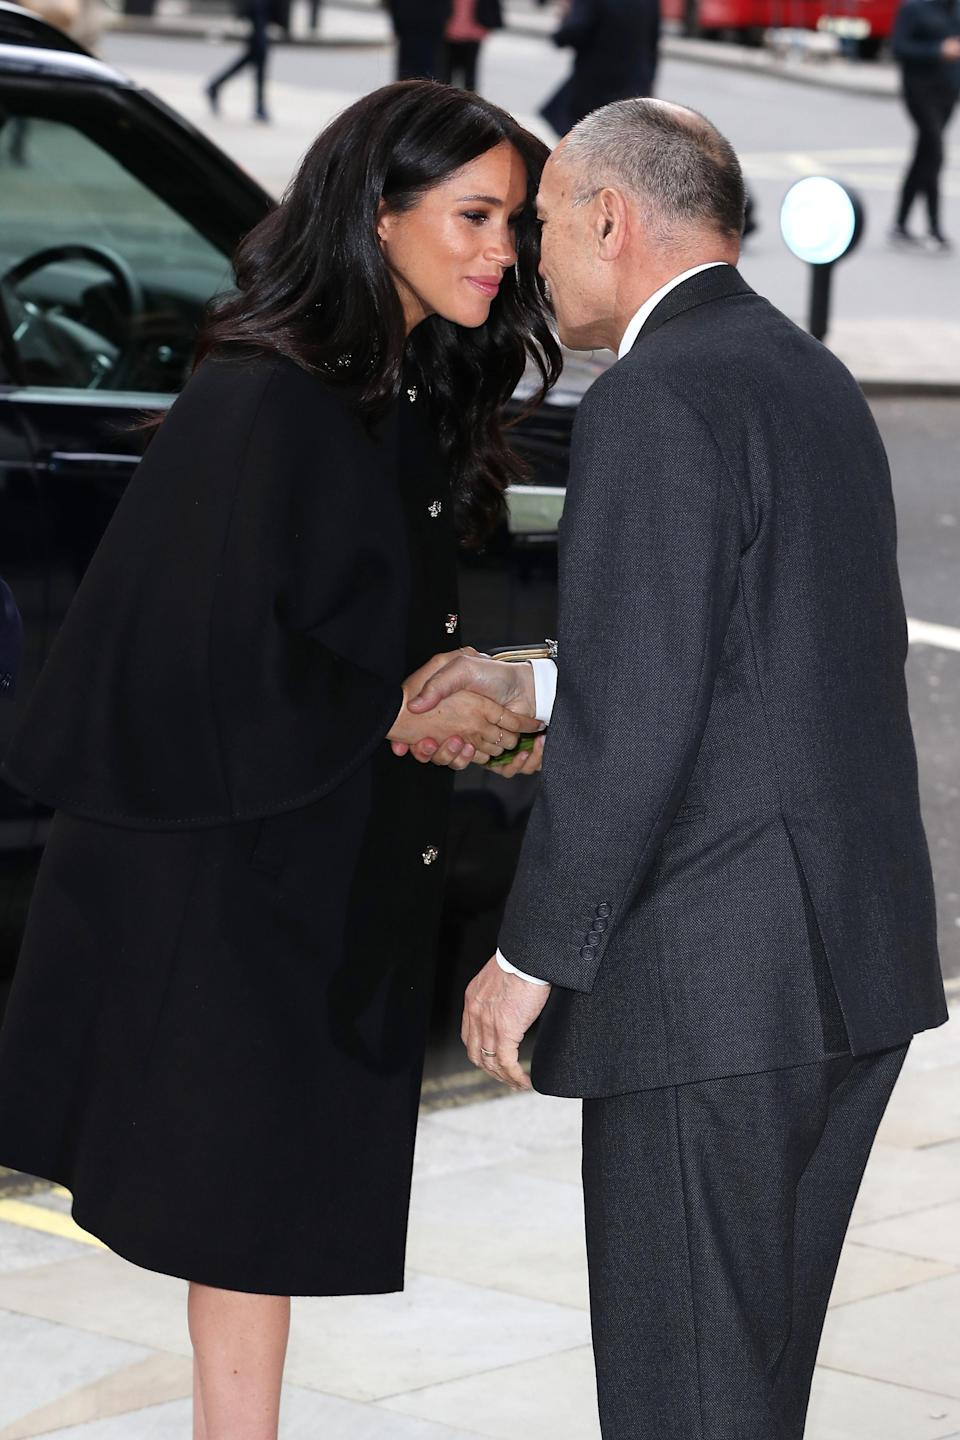 The duchess gives the hongi, a traditional maori greeting as she arrives at New Zealand House [Photo: Getty]